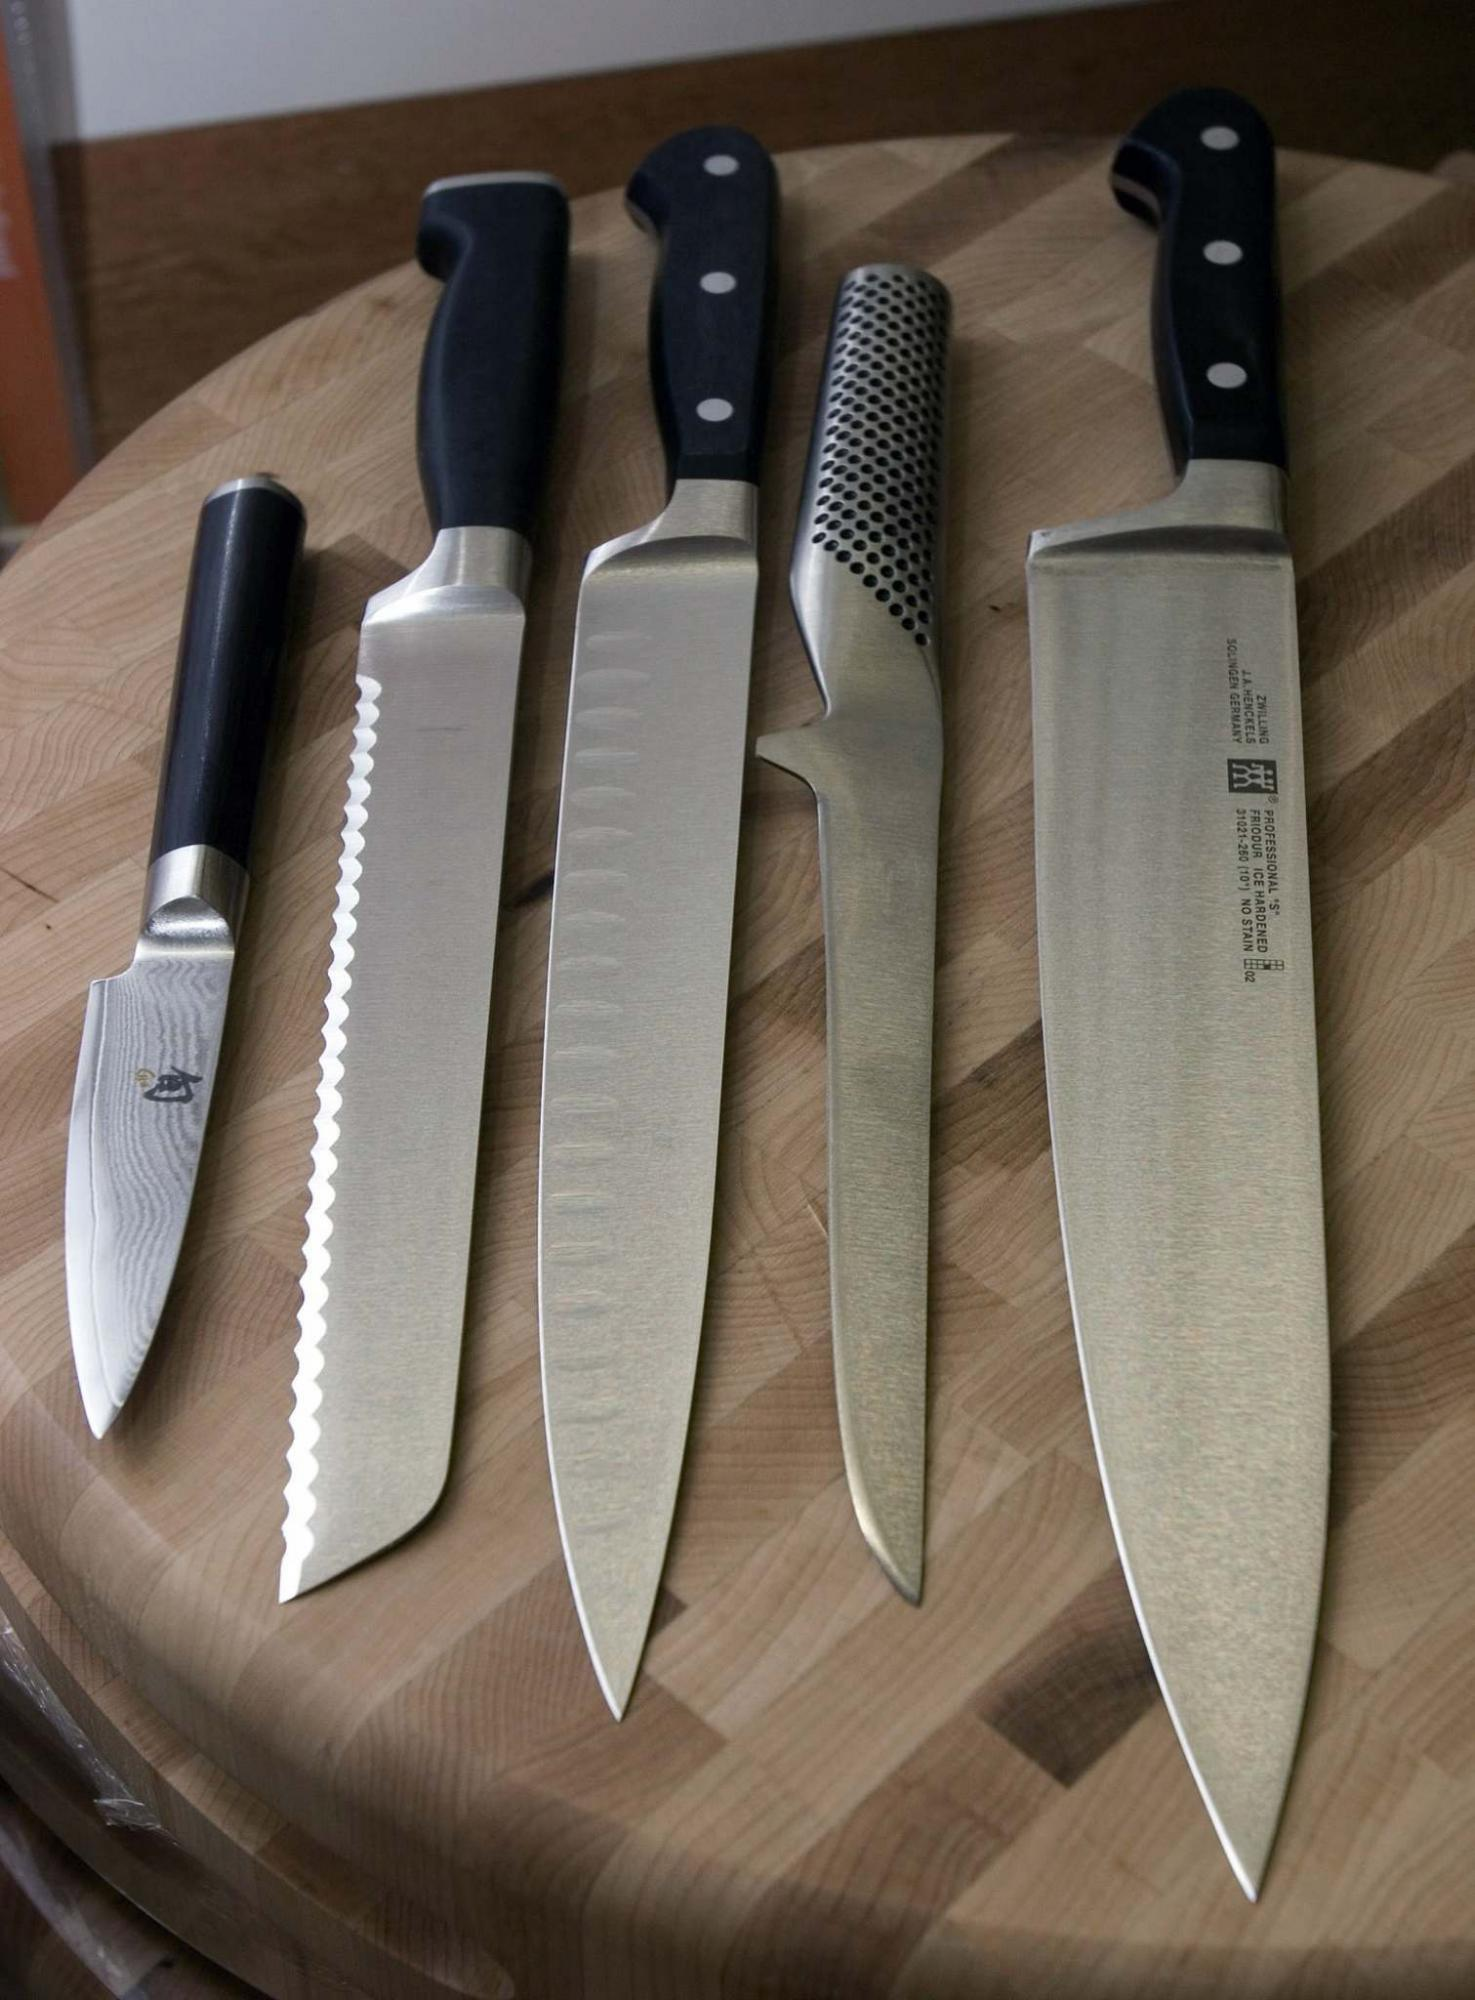 <p>Larry Crowe / Associated Press files</p><p>Sharp knives of good quality are actually safer in the kitchen than cheap and dull blades. </p>